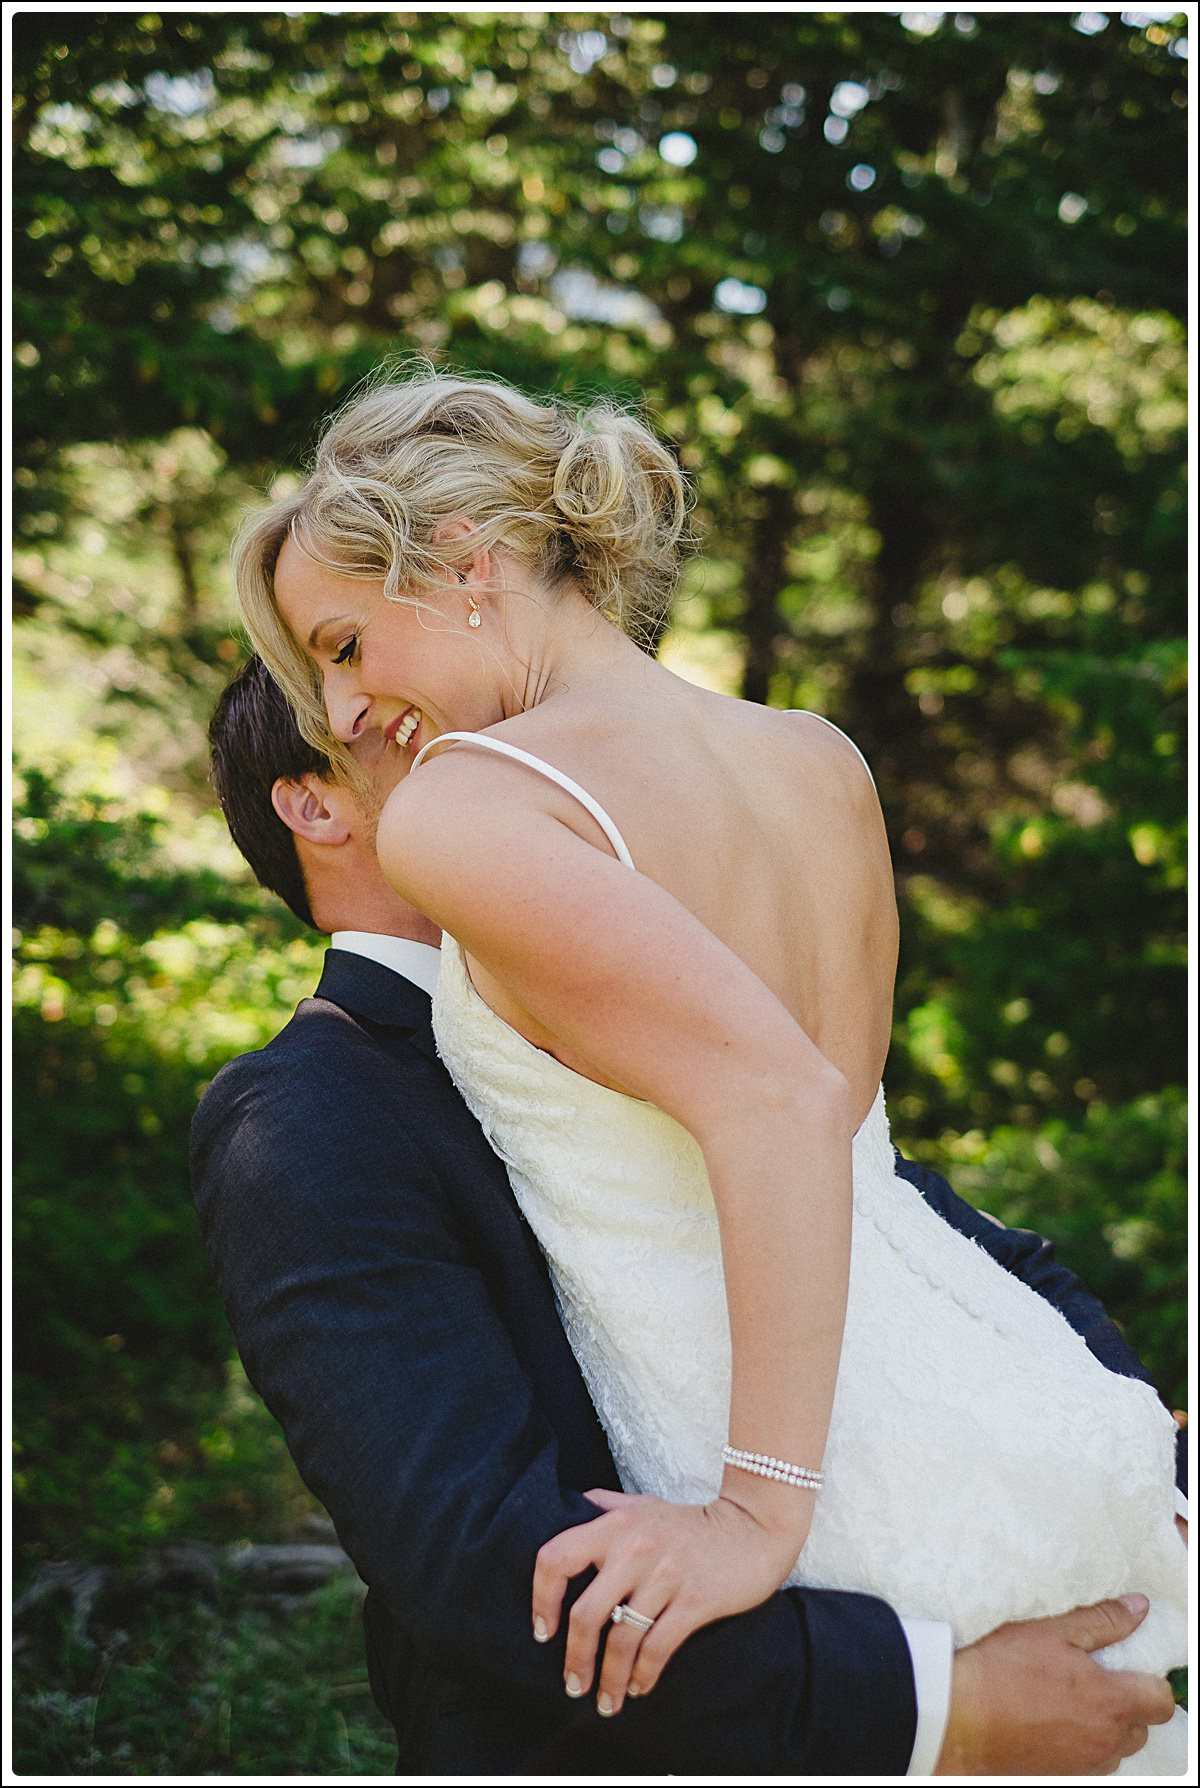 6:8 Photography,6:8 Wedding Photography,Alberta,Craig,Denise,Mountains,National Park,Waterton,Wedding,